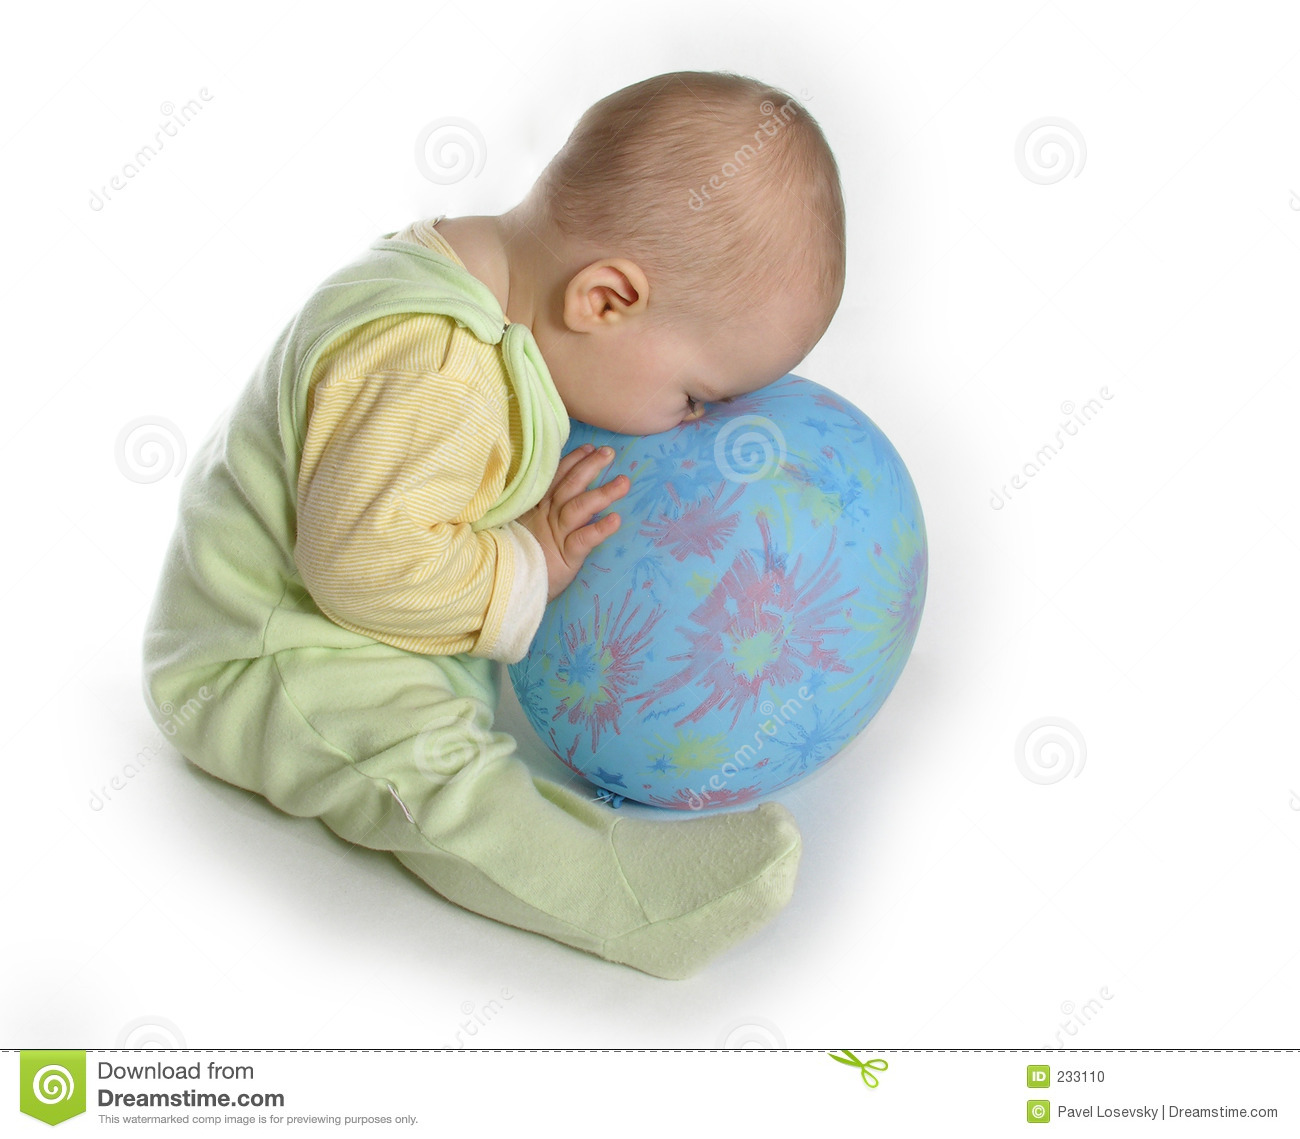 Baby touch nose to balloon